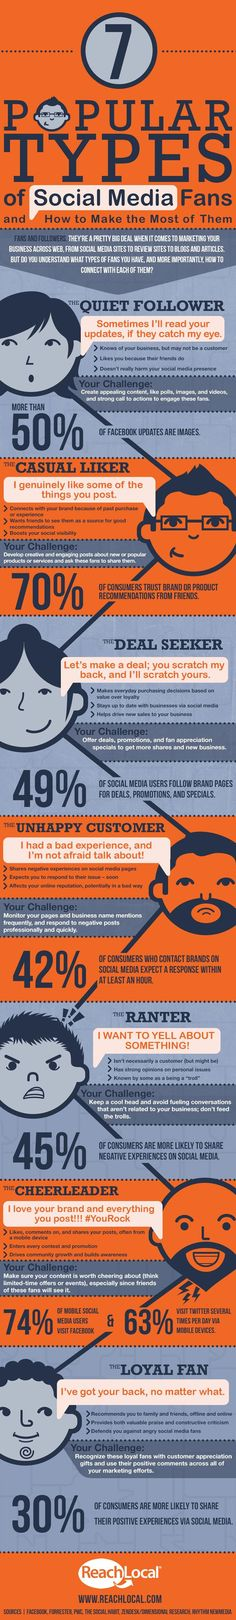 The 7 Types of Social Media Users and How to Engage Them #infographic